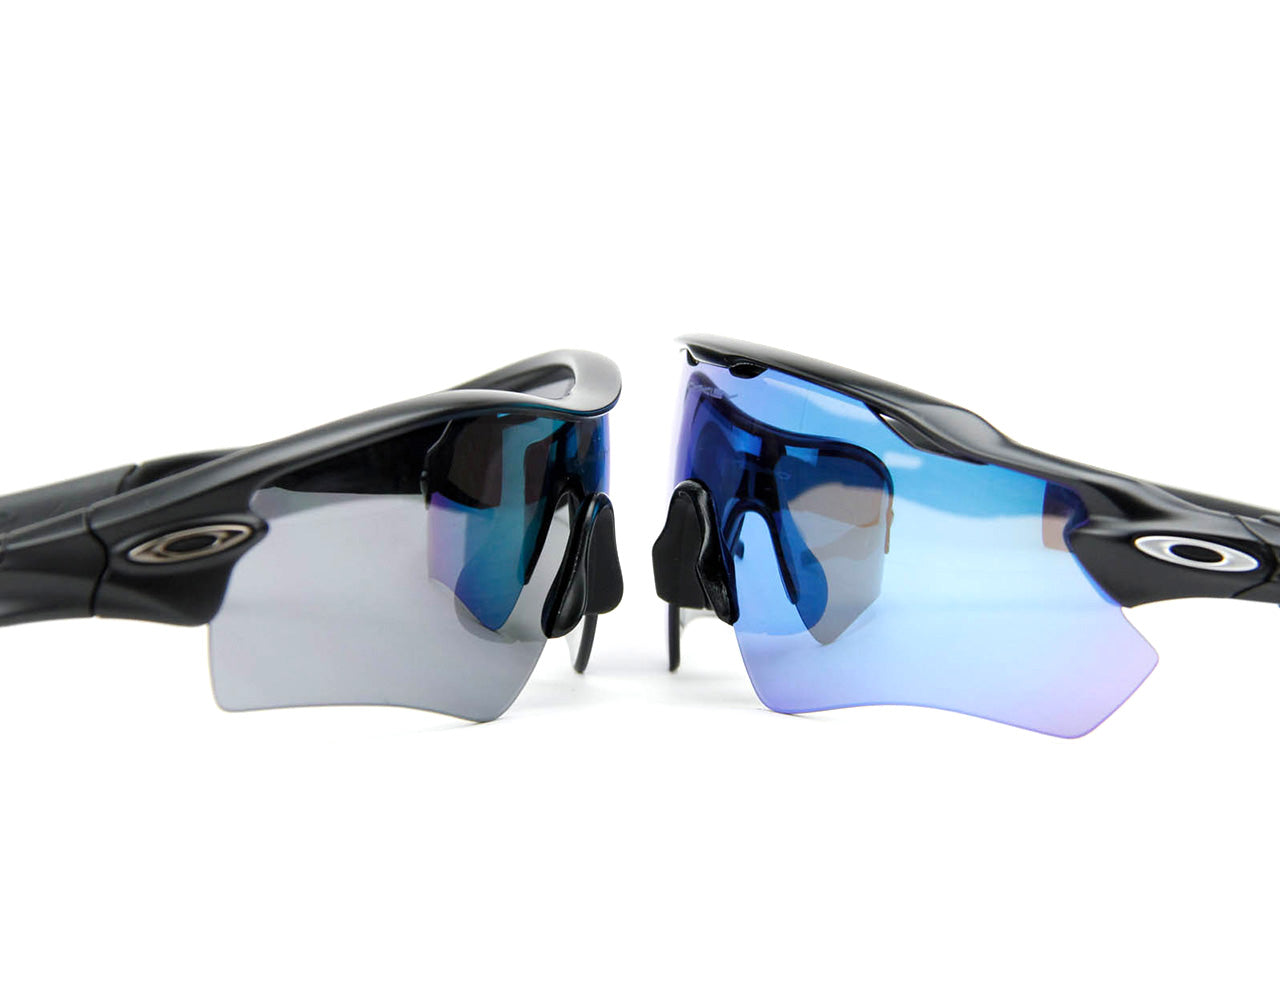 Oakley Radar Path (left) vs Oakley Radar EV Path (right)